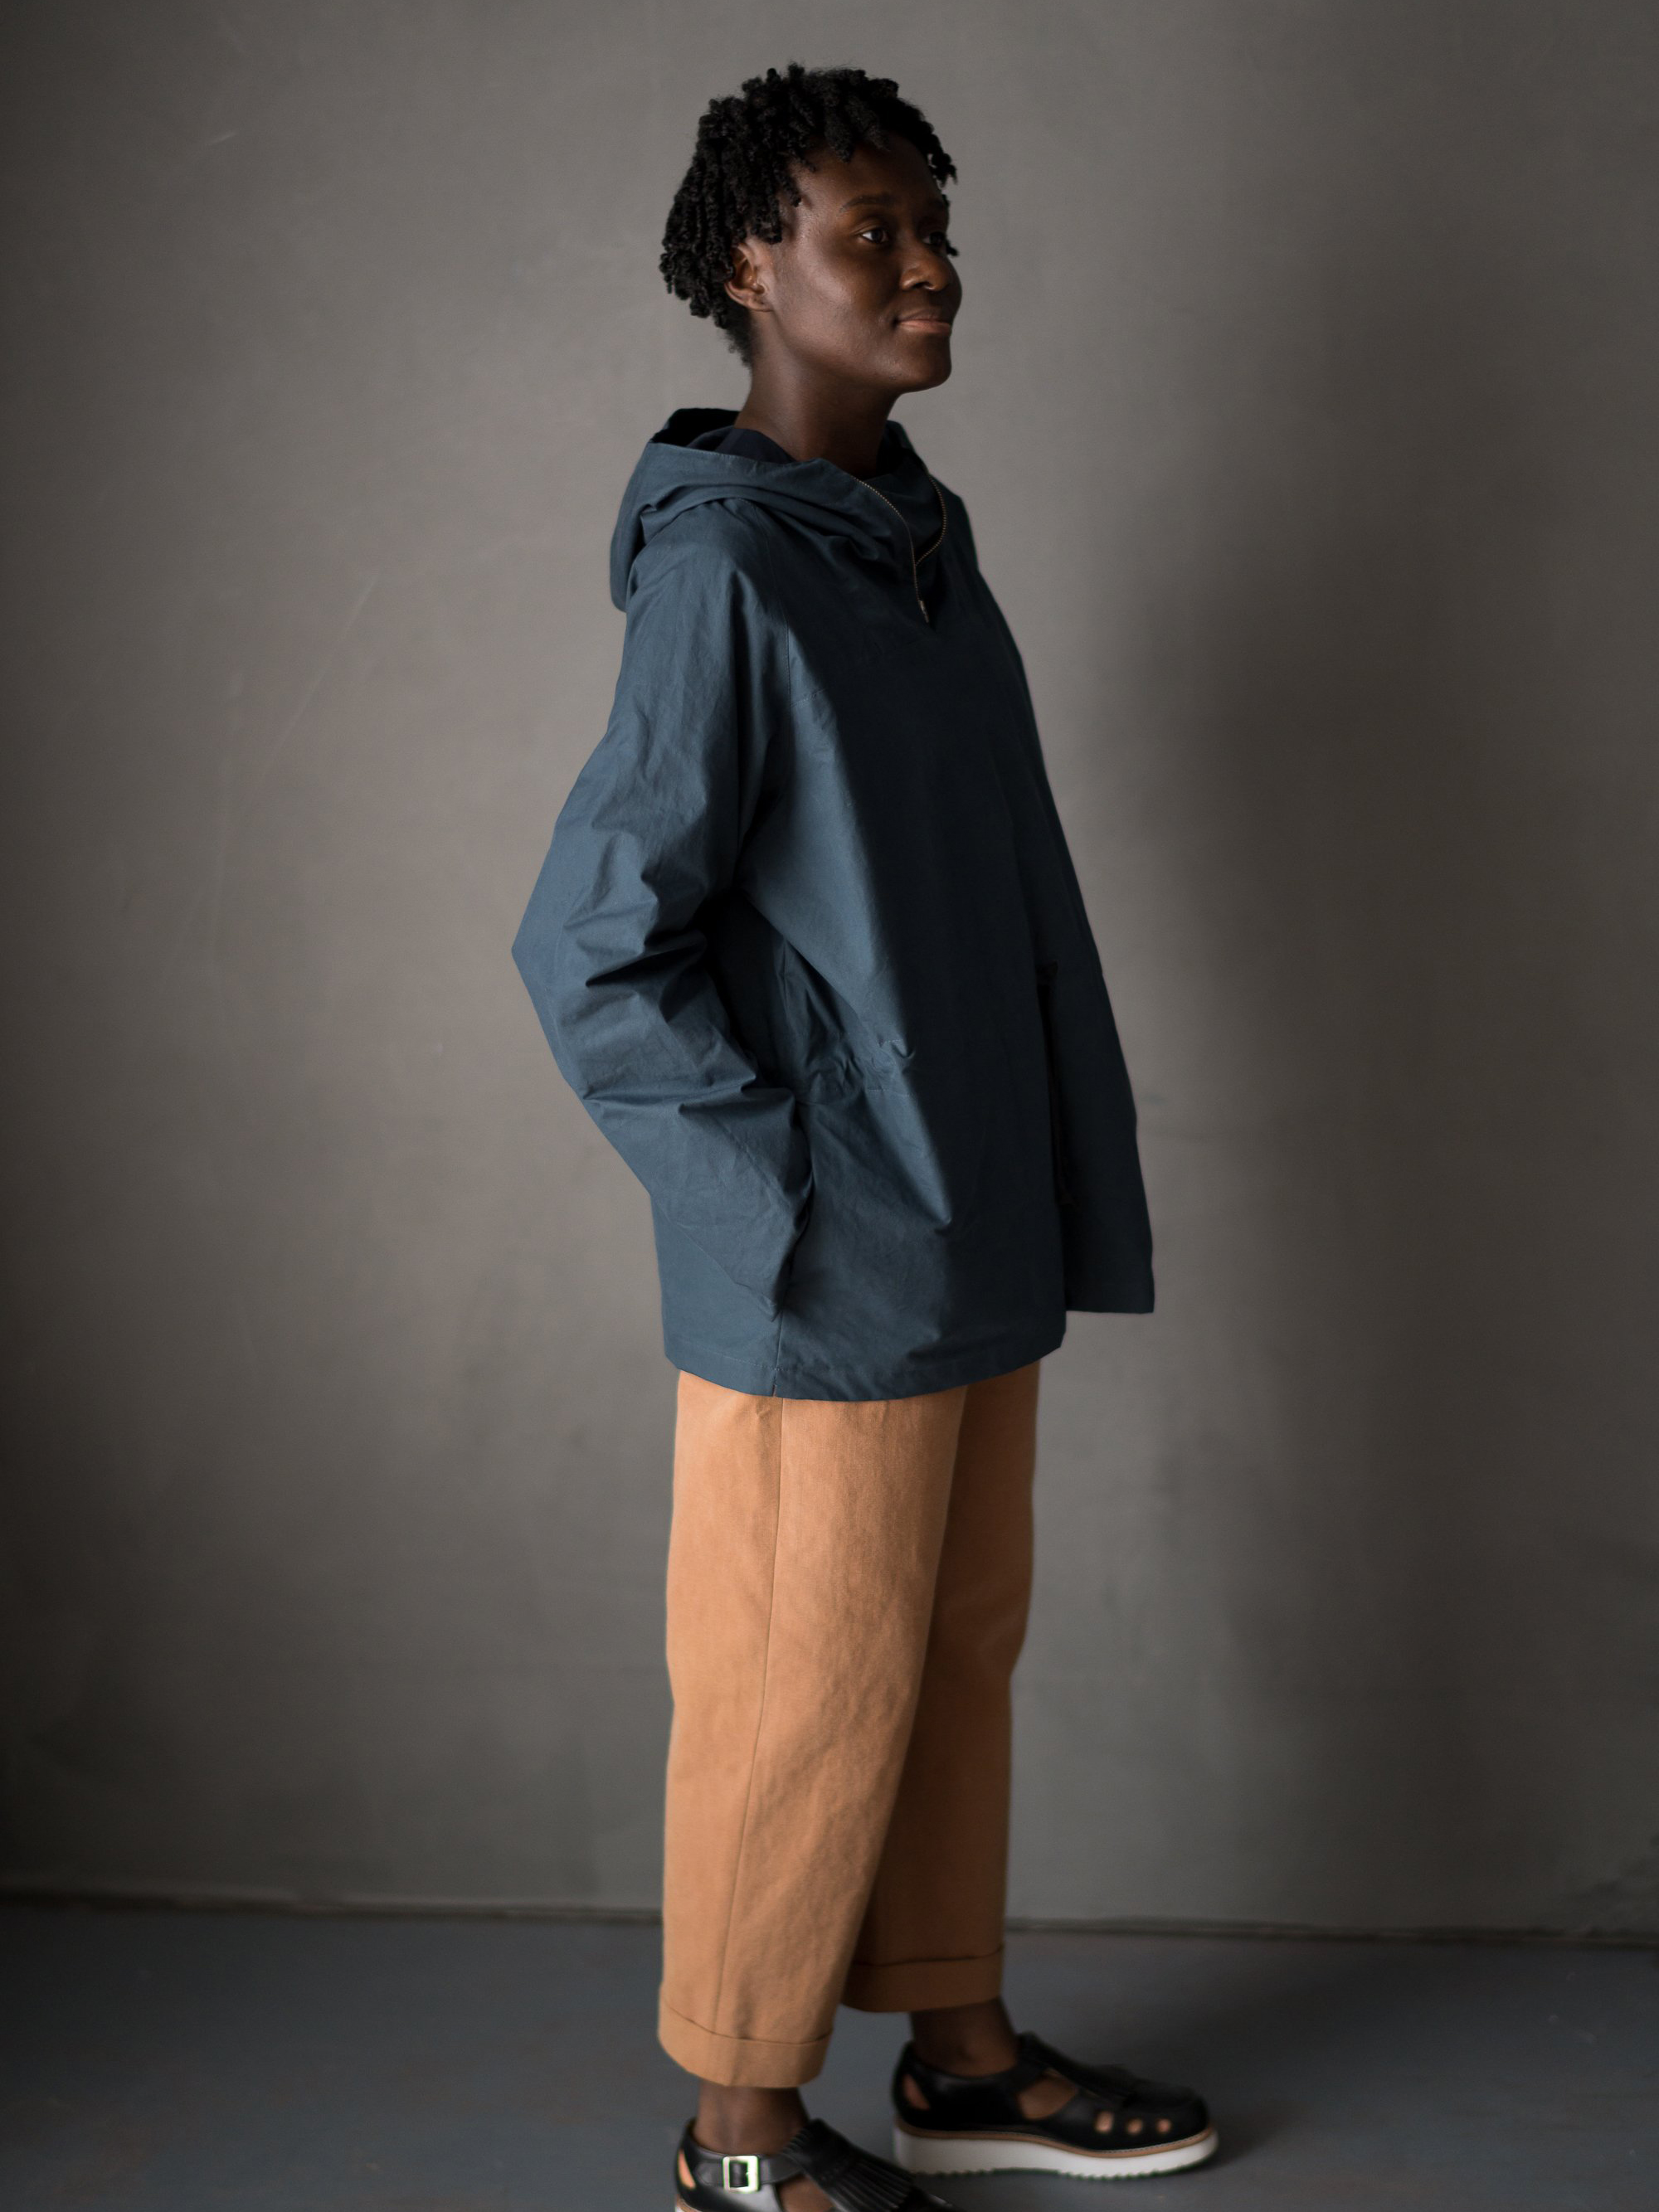 The Eve Trousers